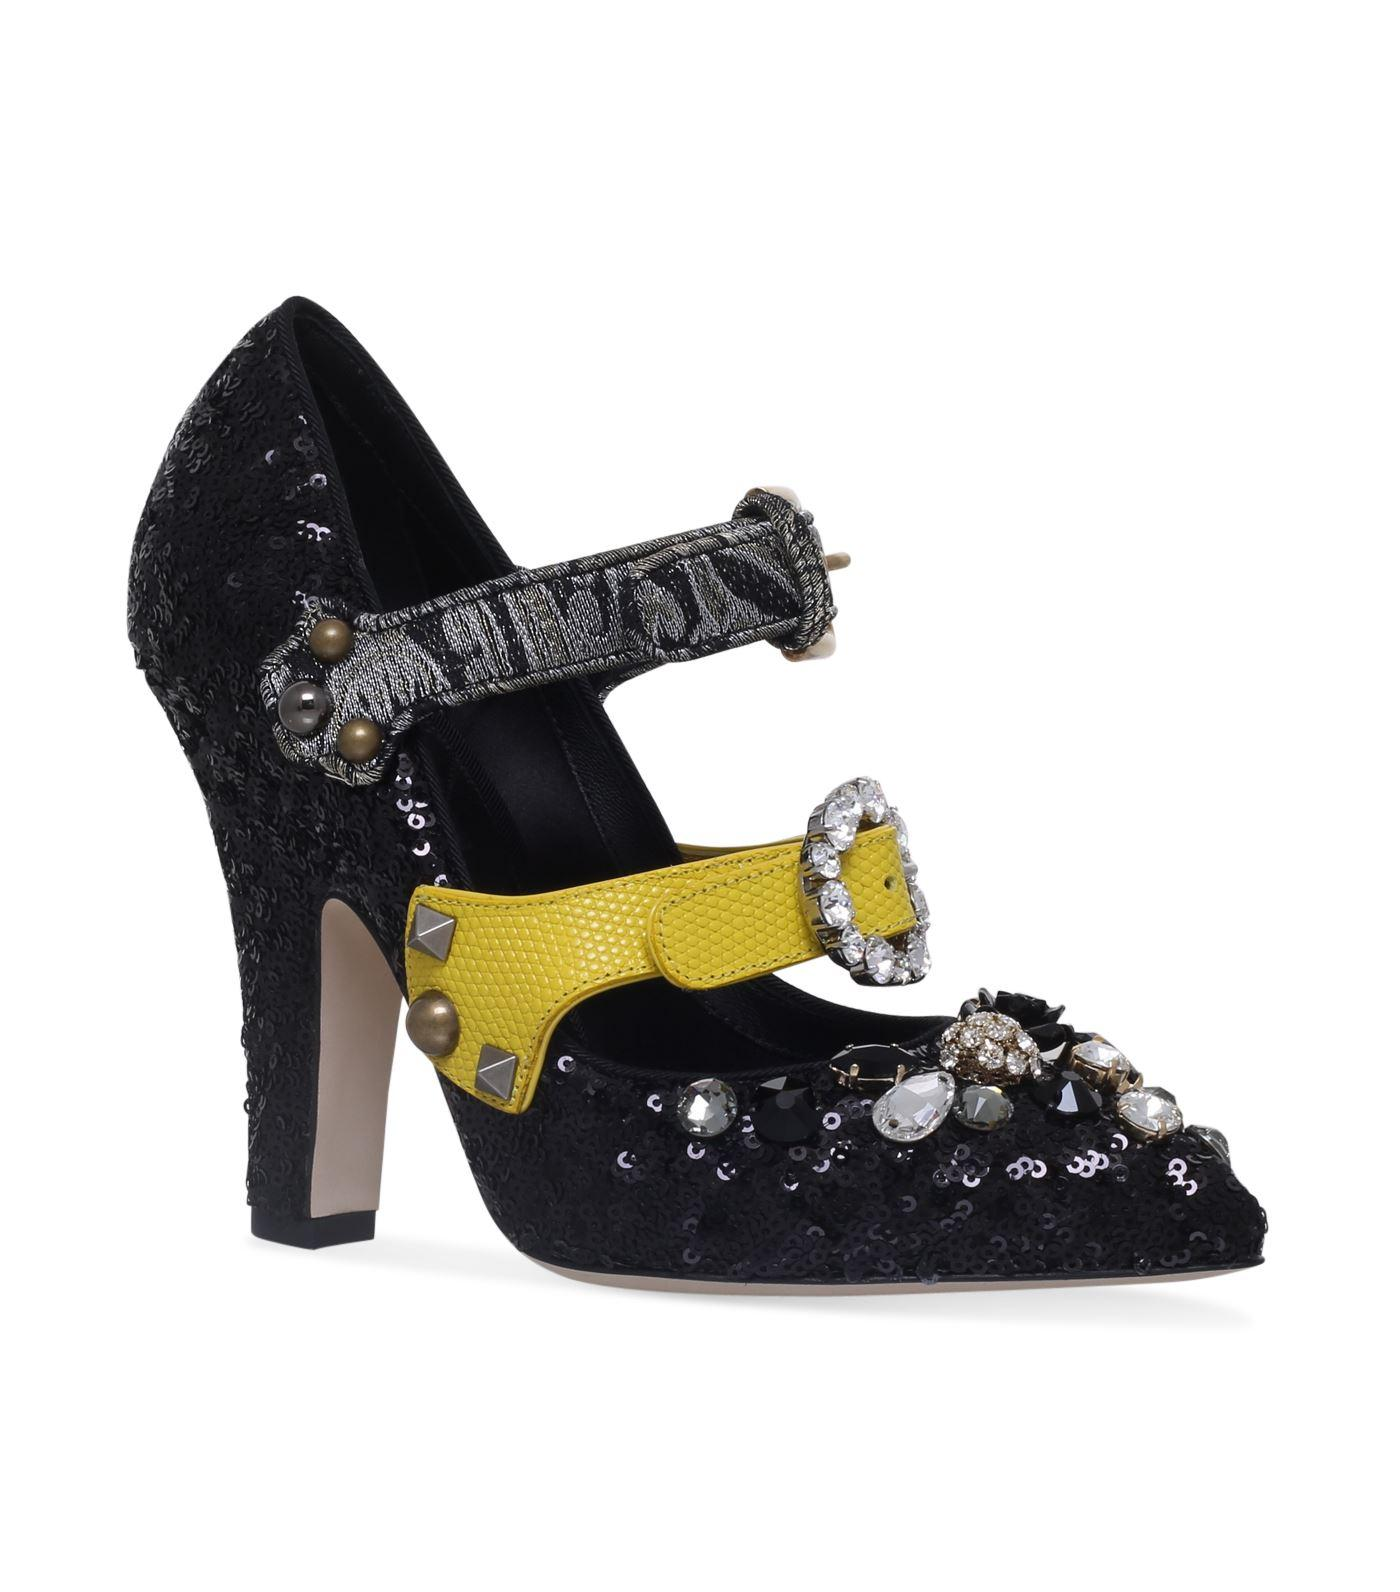 Dolce & Gabbana Sequin Mary Jane Pumps 105 In Multi